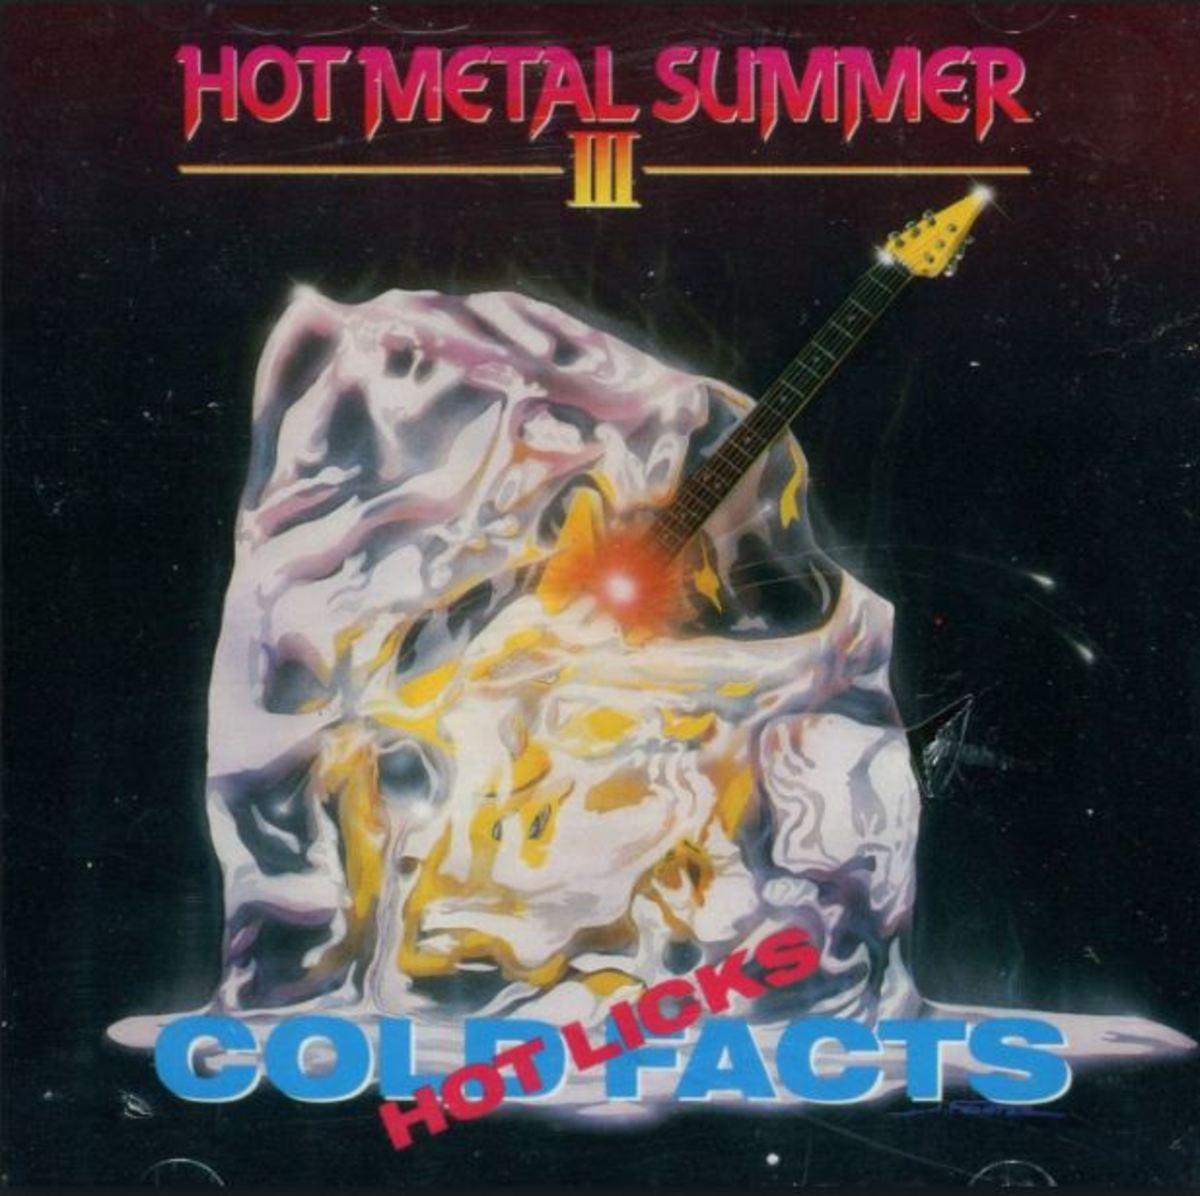 """Hot Metal Summer III"" compilation album, 1990: Cold as Ice?"